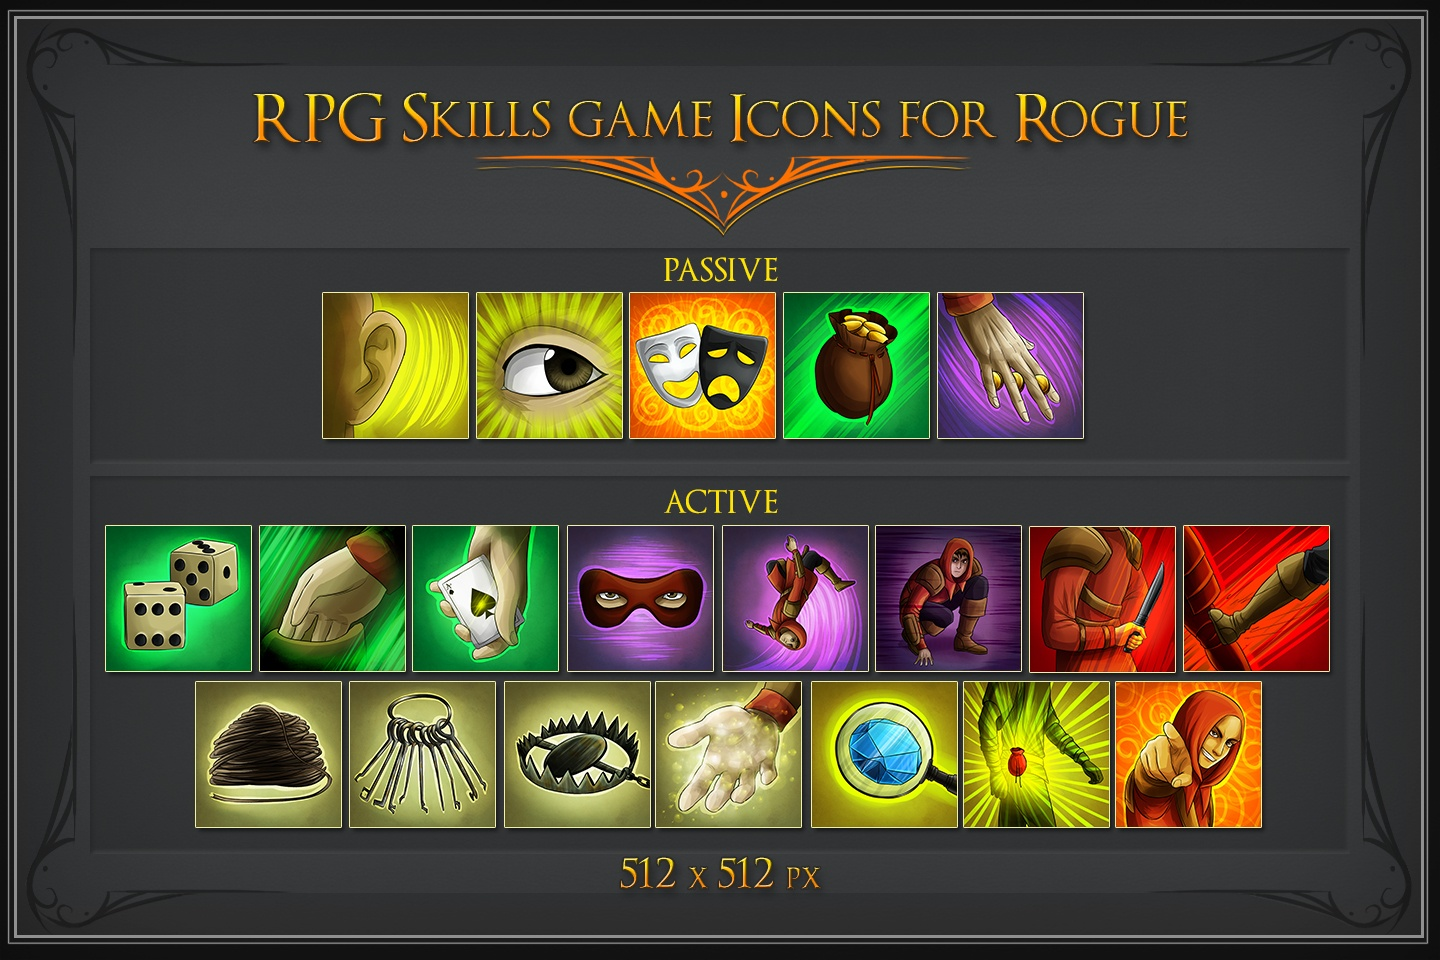 RPG Skill Icons for Rogue